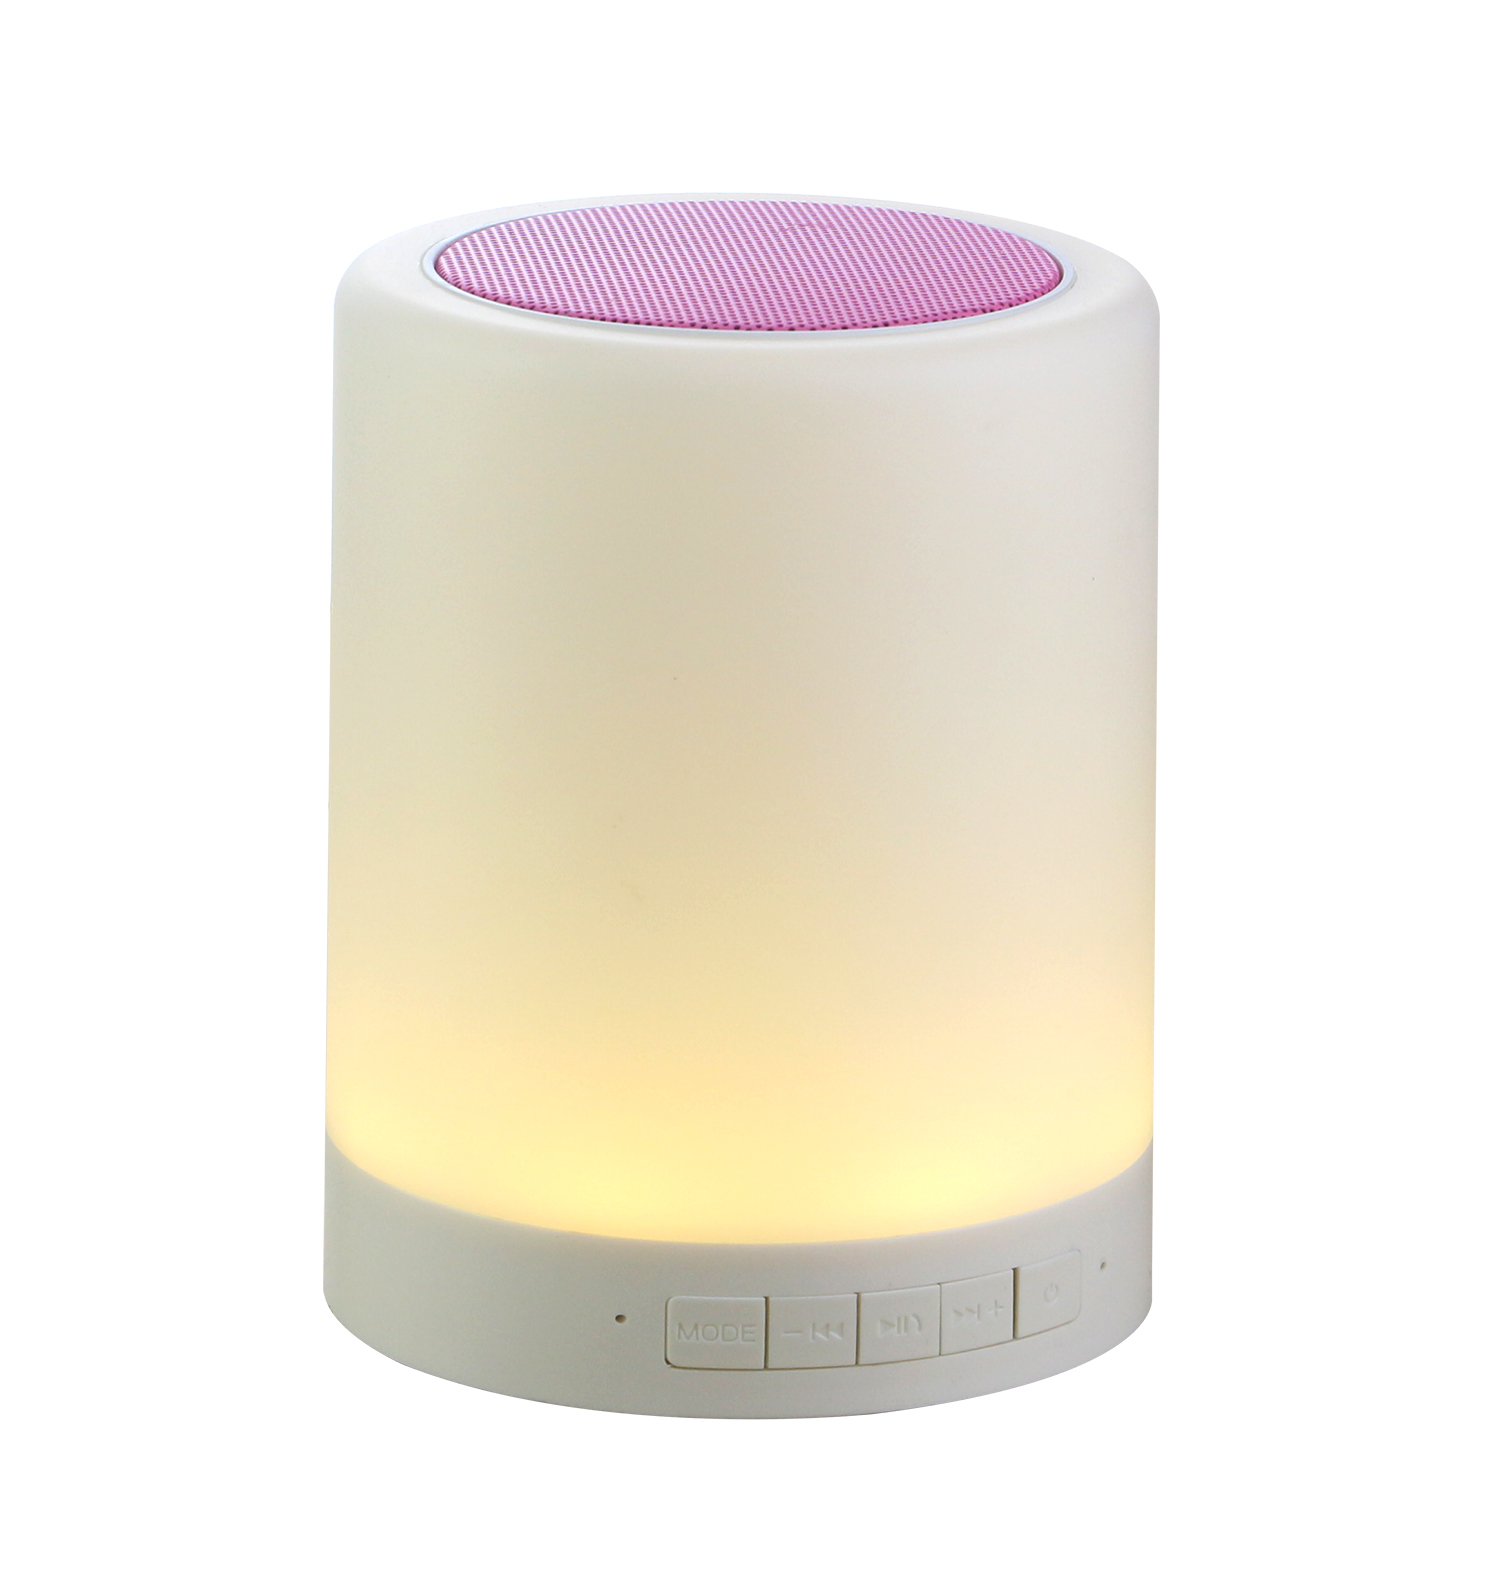 Led Night Light Smart Touch Lamp Speaker With TF Card Port Music Player Wireless Bluetooth Speaker Lamp